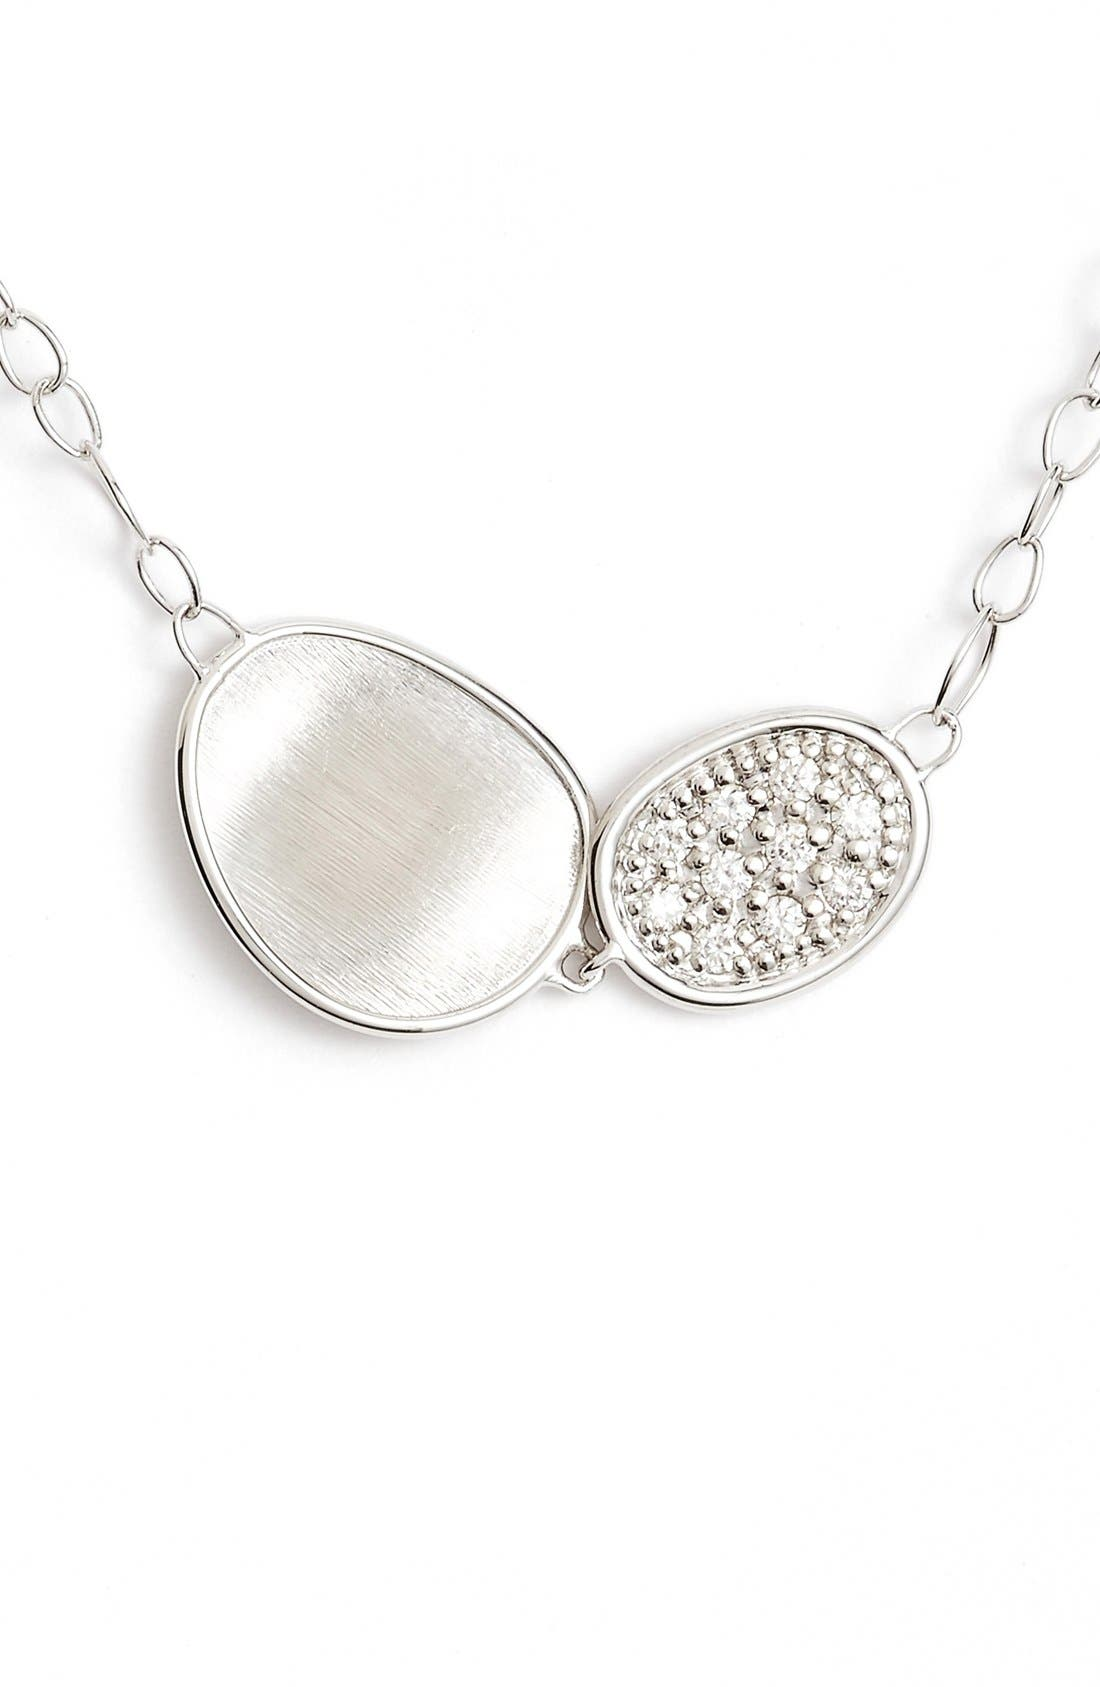 Main Image - Marco Bicego Lunaria Pendant Necklace